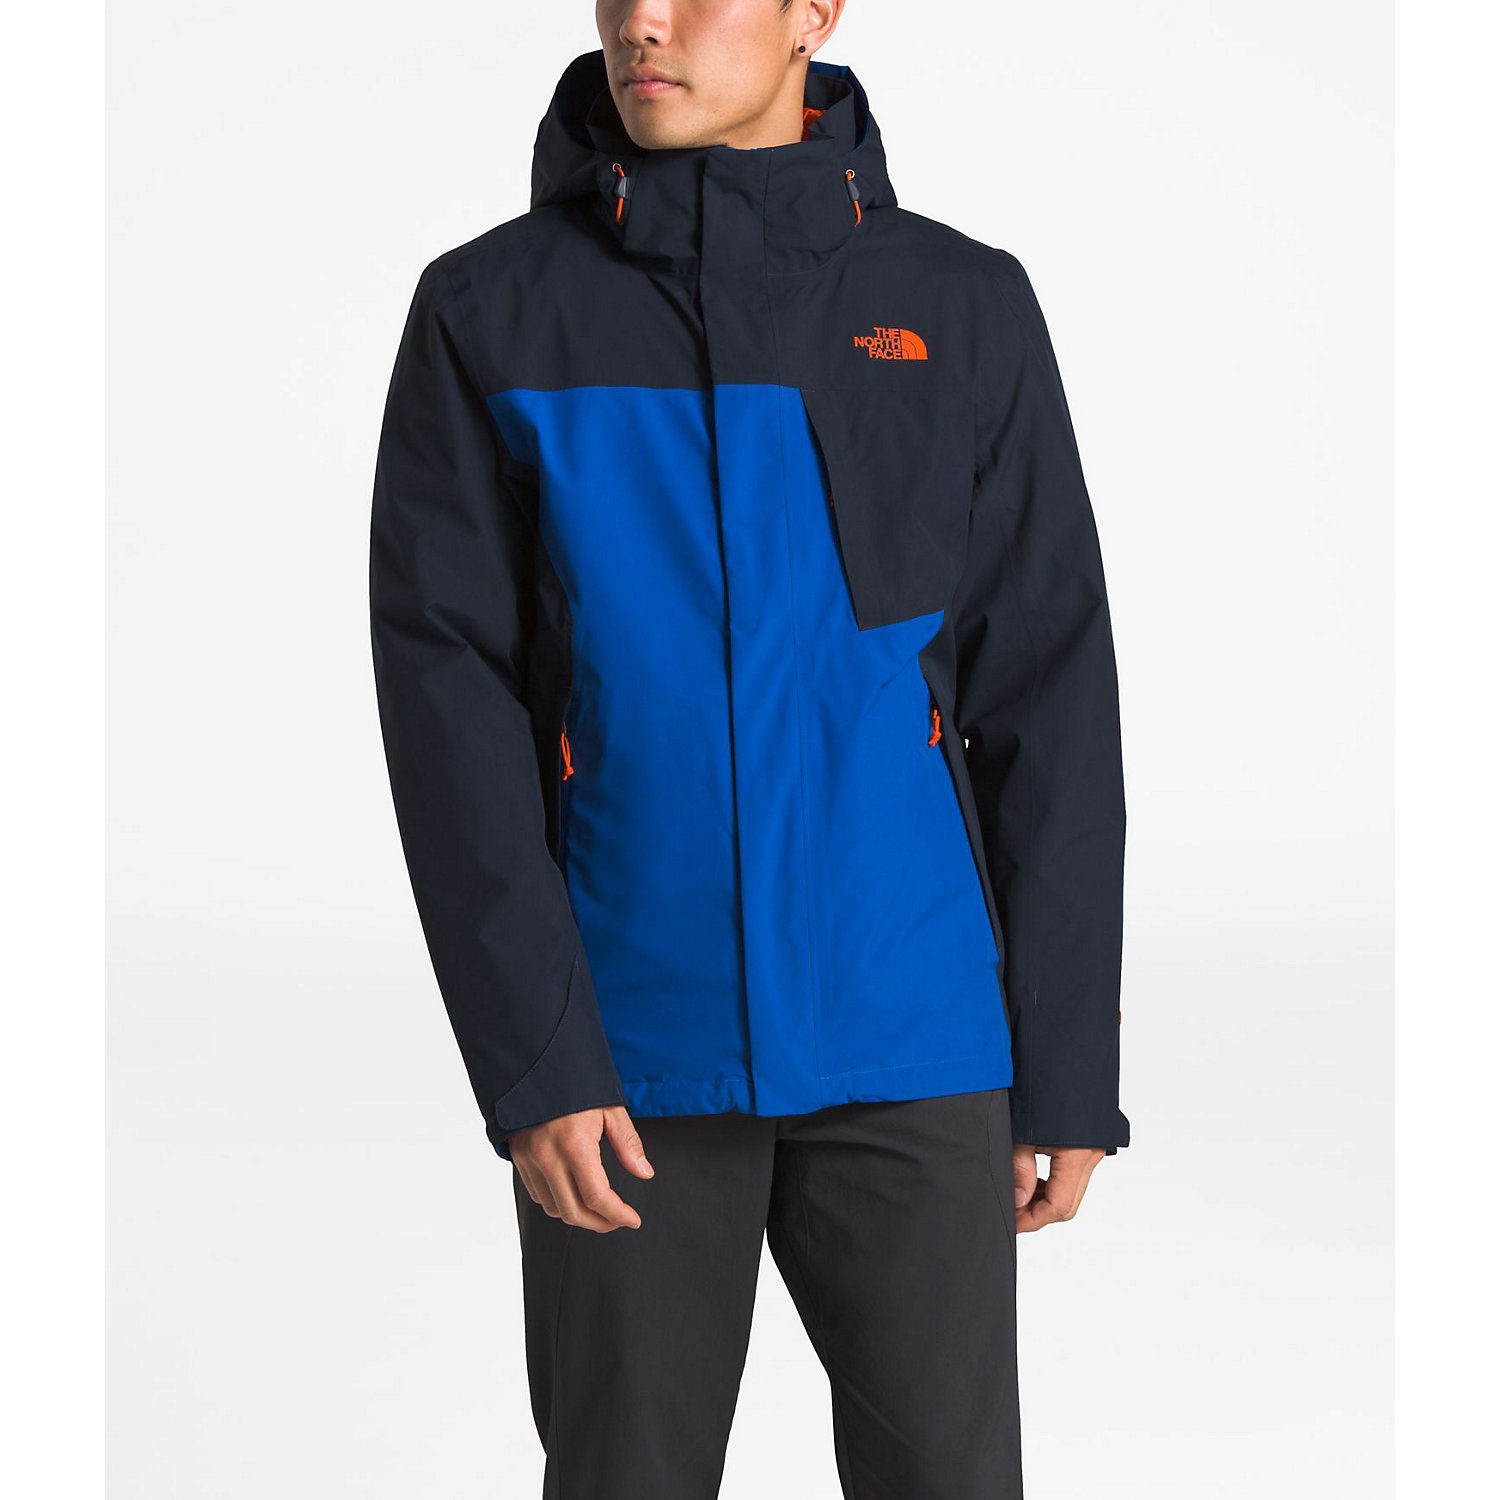 45dee78c7177 The North Face Men s Mountain Light Triclimate Jacket - Moosejaw